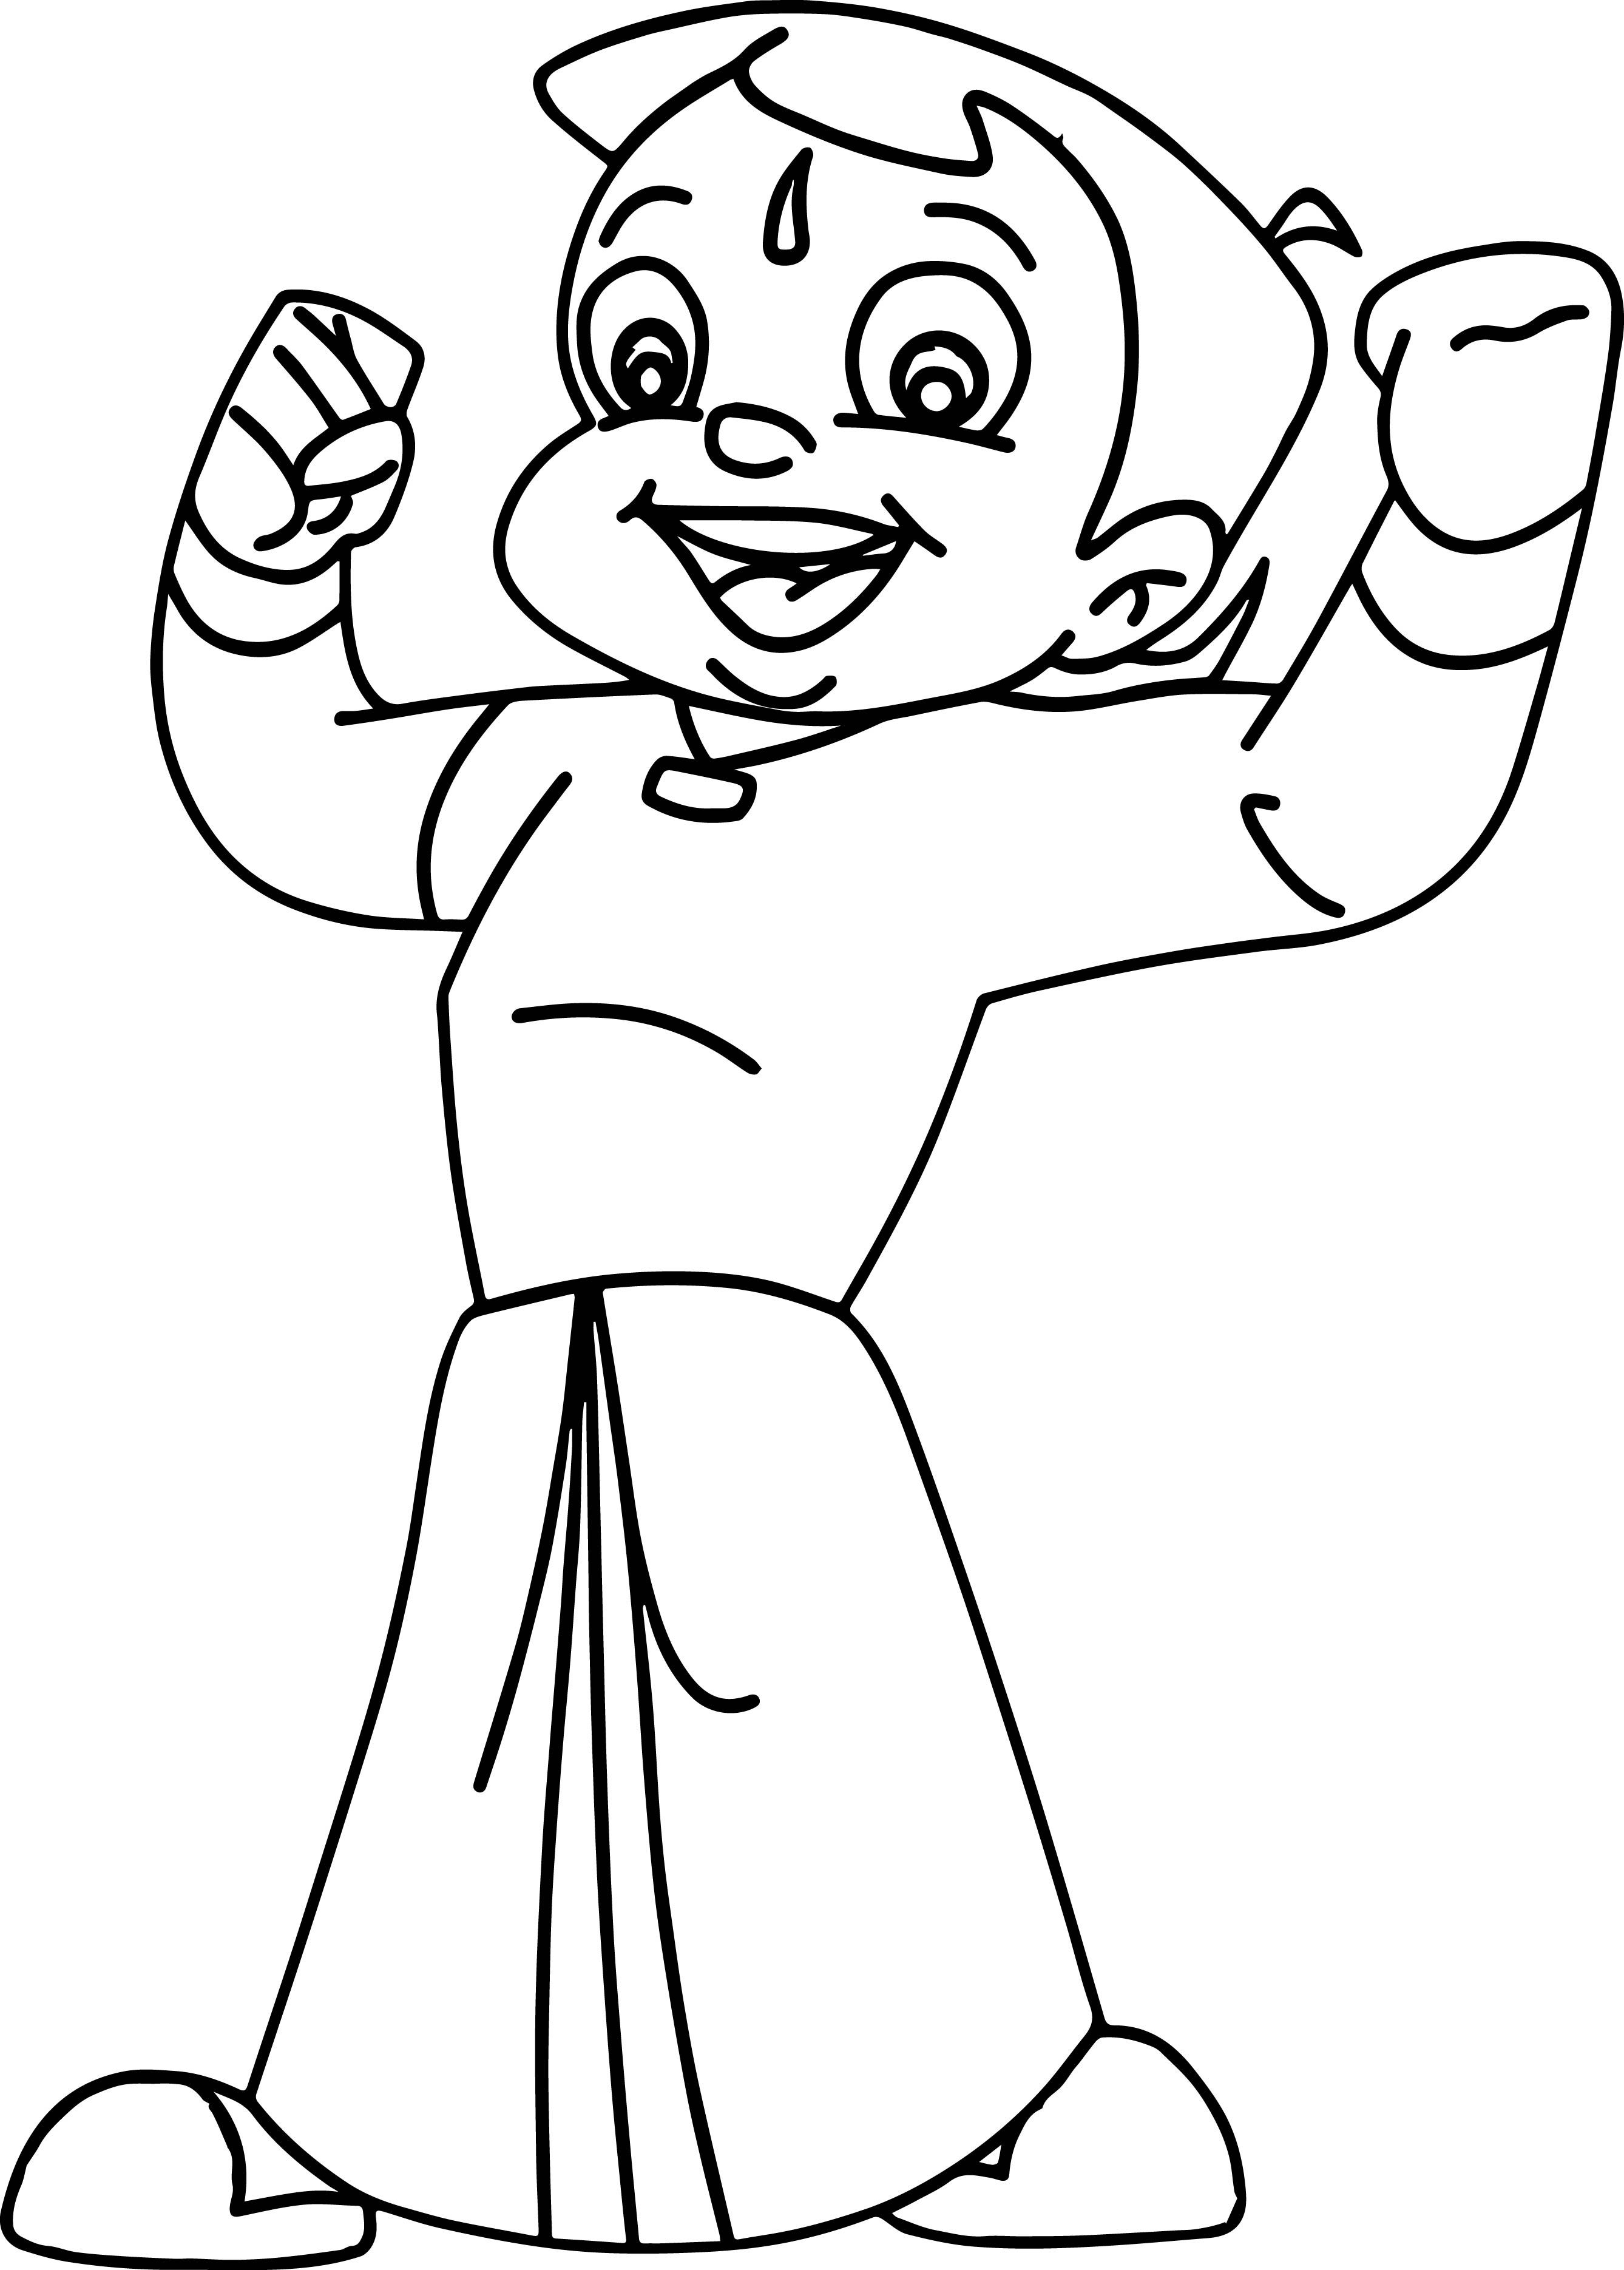 Chhota Bheem Coloring Pages | Cake